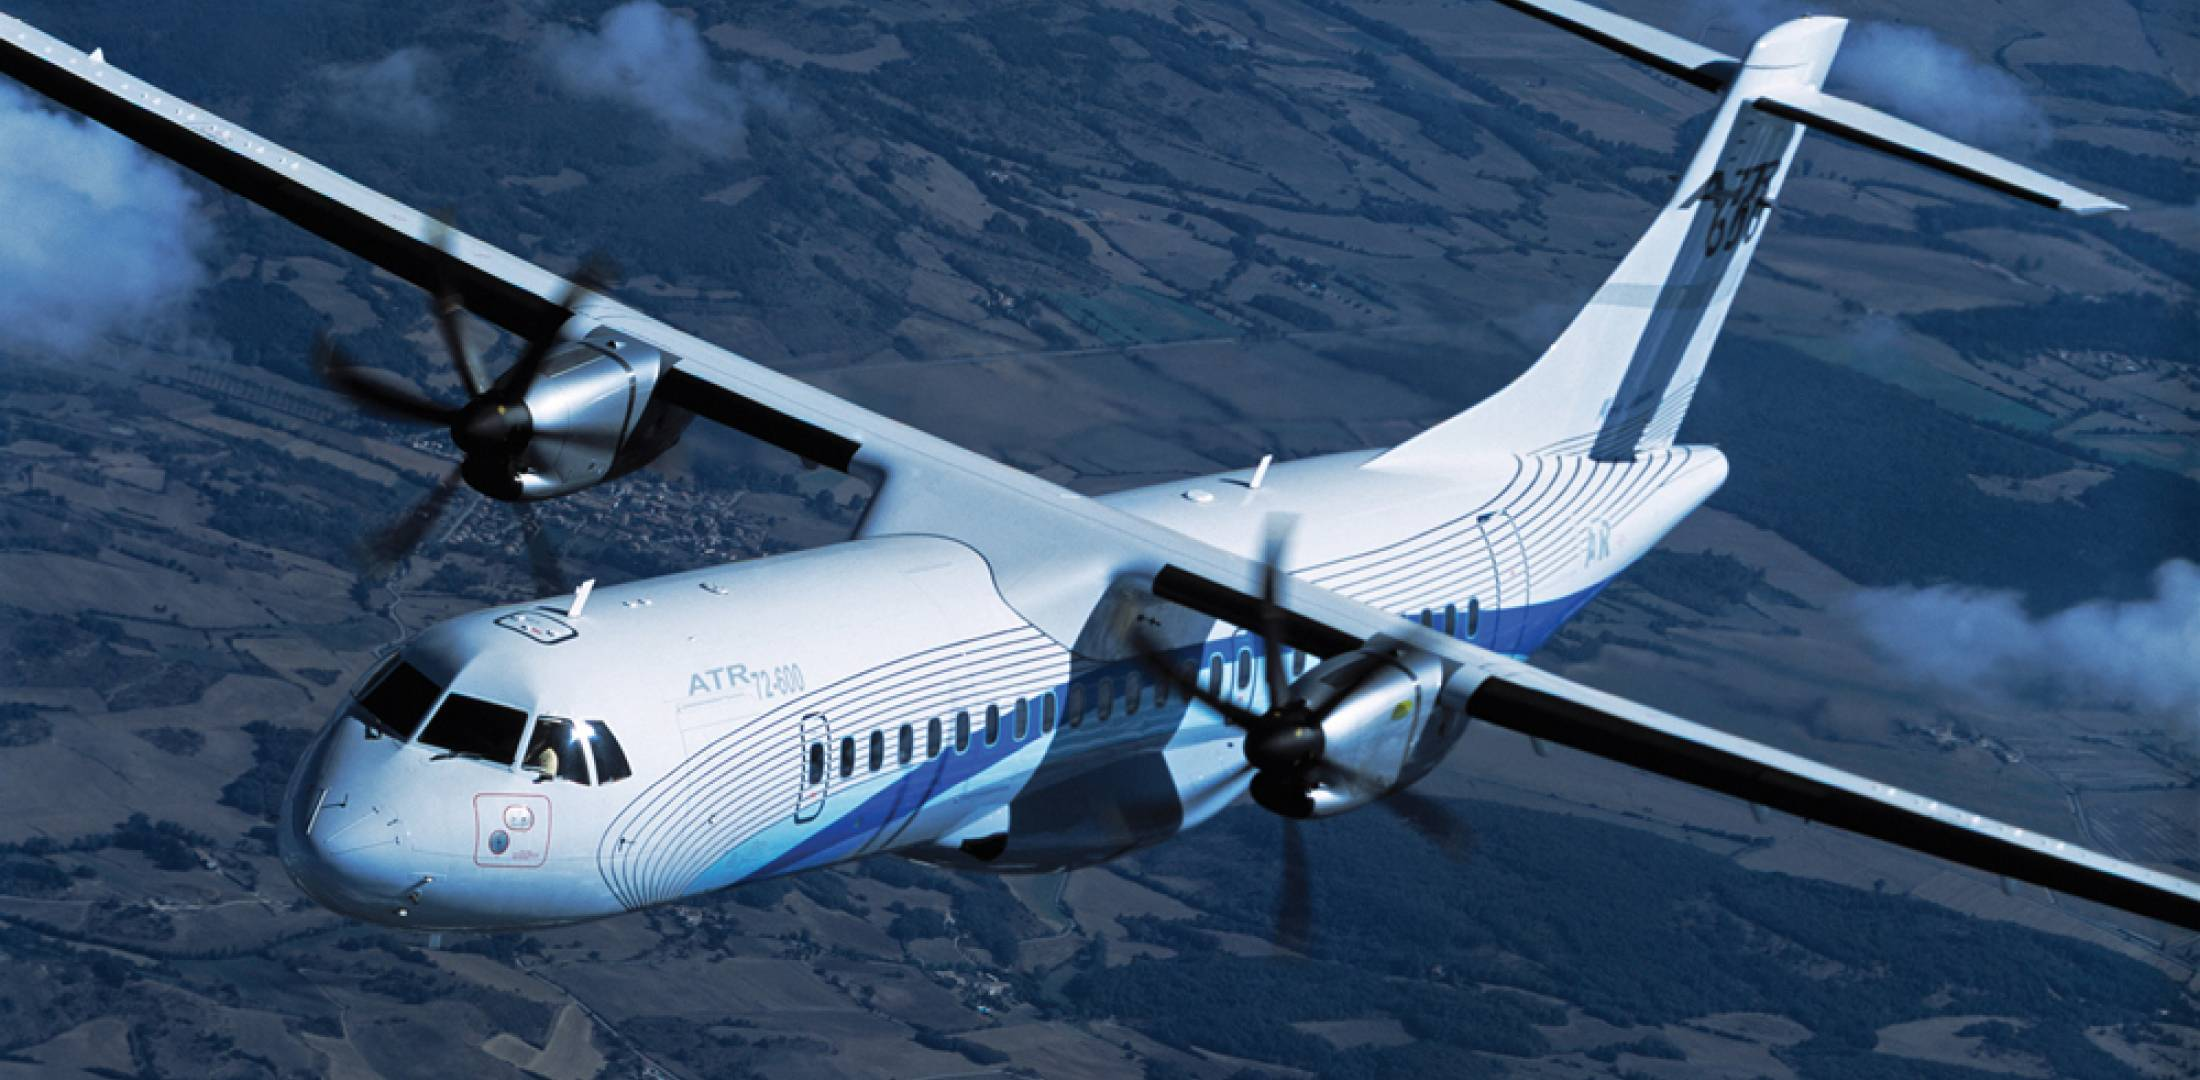 Alpha Star ordered two ATR72-600s at the Dubai Aishow last fall. They will join its current fleet of six: five Airbus models and one ATR42-600.